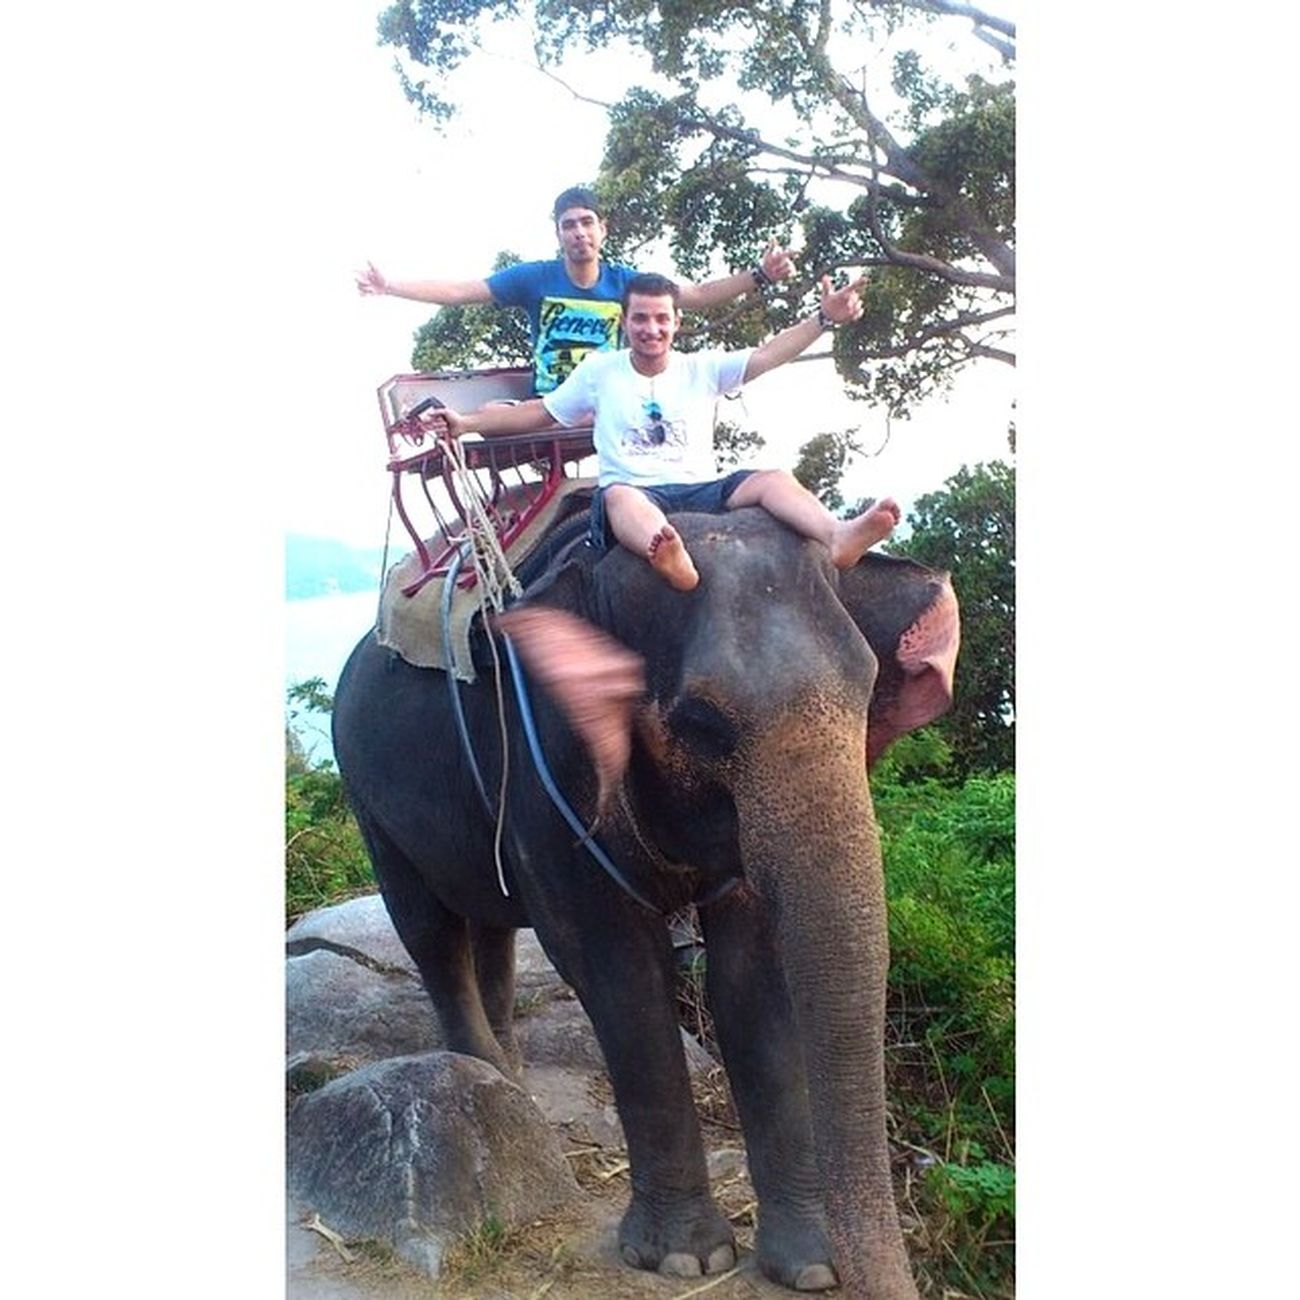 Funny Time Nice Travel On the Elephant with @mody_shaeri @osama_elgon ????✔️Thailand Thai Fantasea Phuket Elephant shots